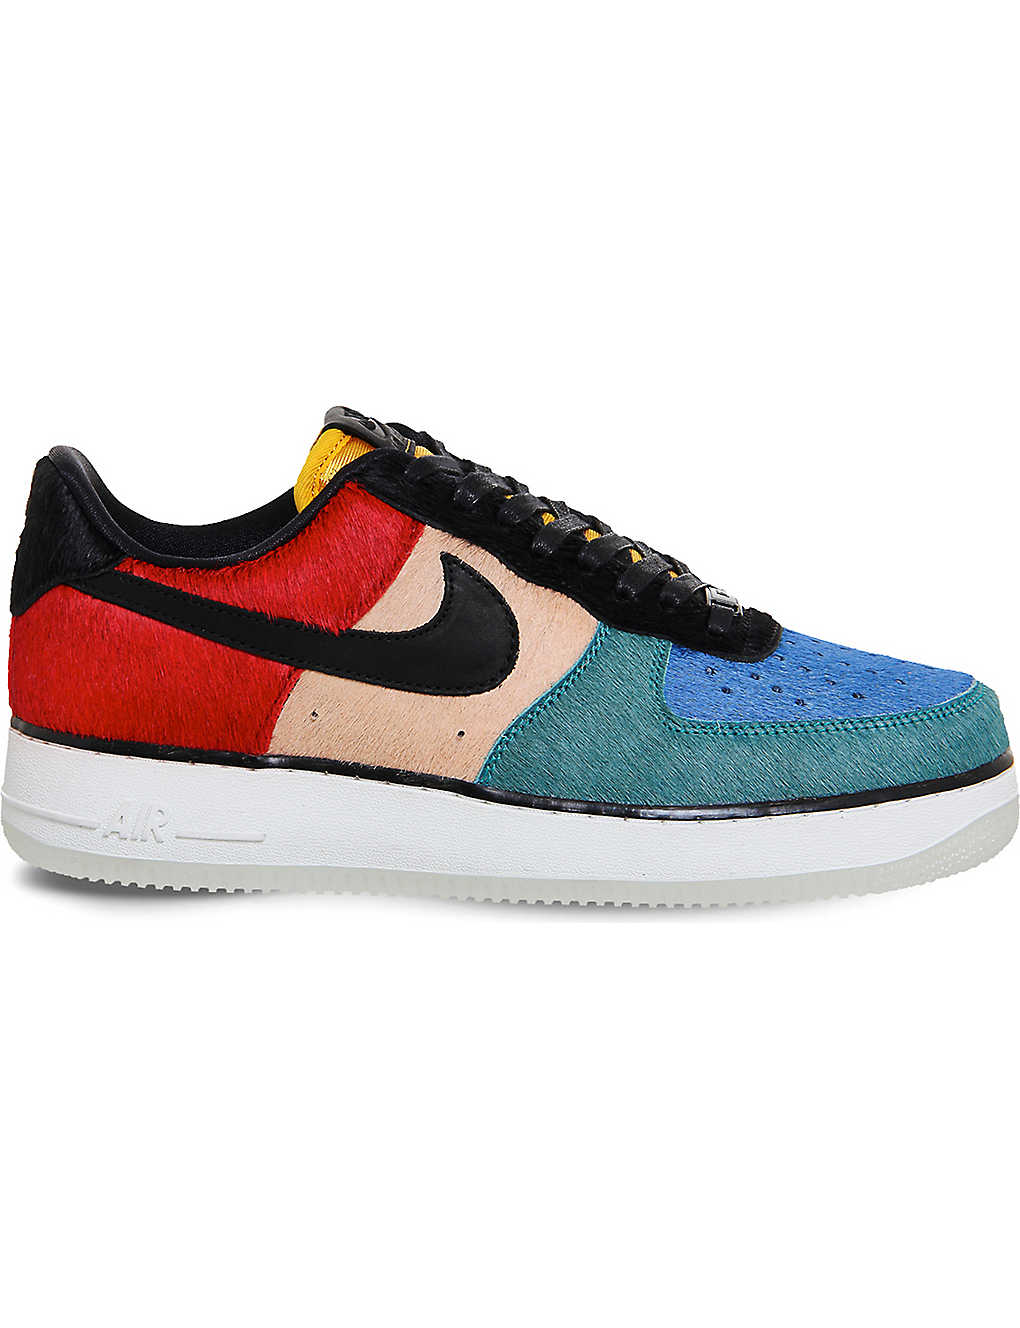 outlet store a863e 048d1 Air Force 1 Premium Pony leather trainers ...